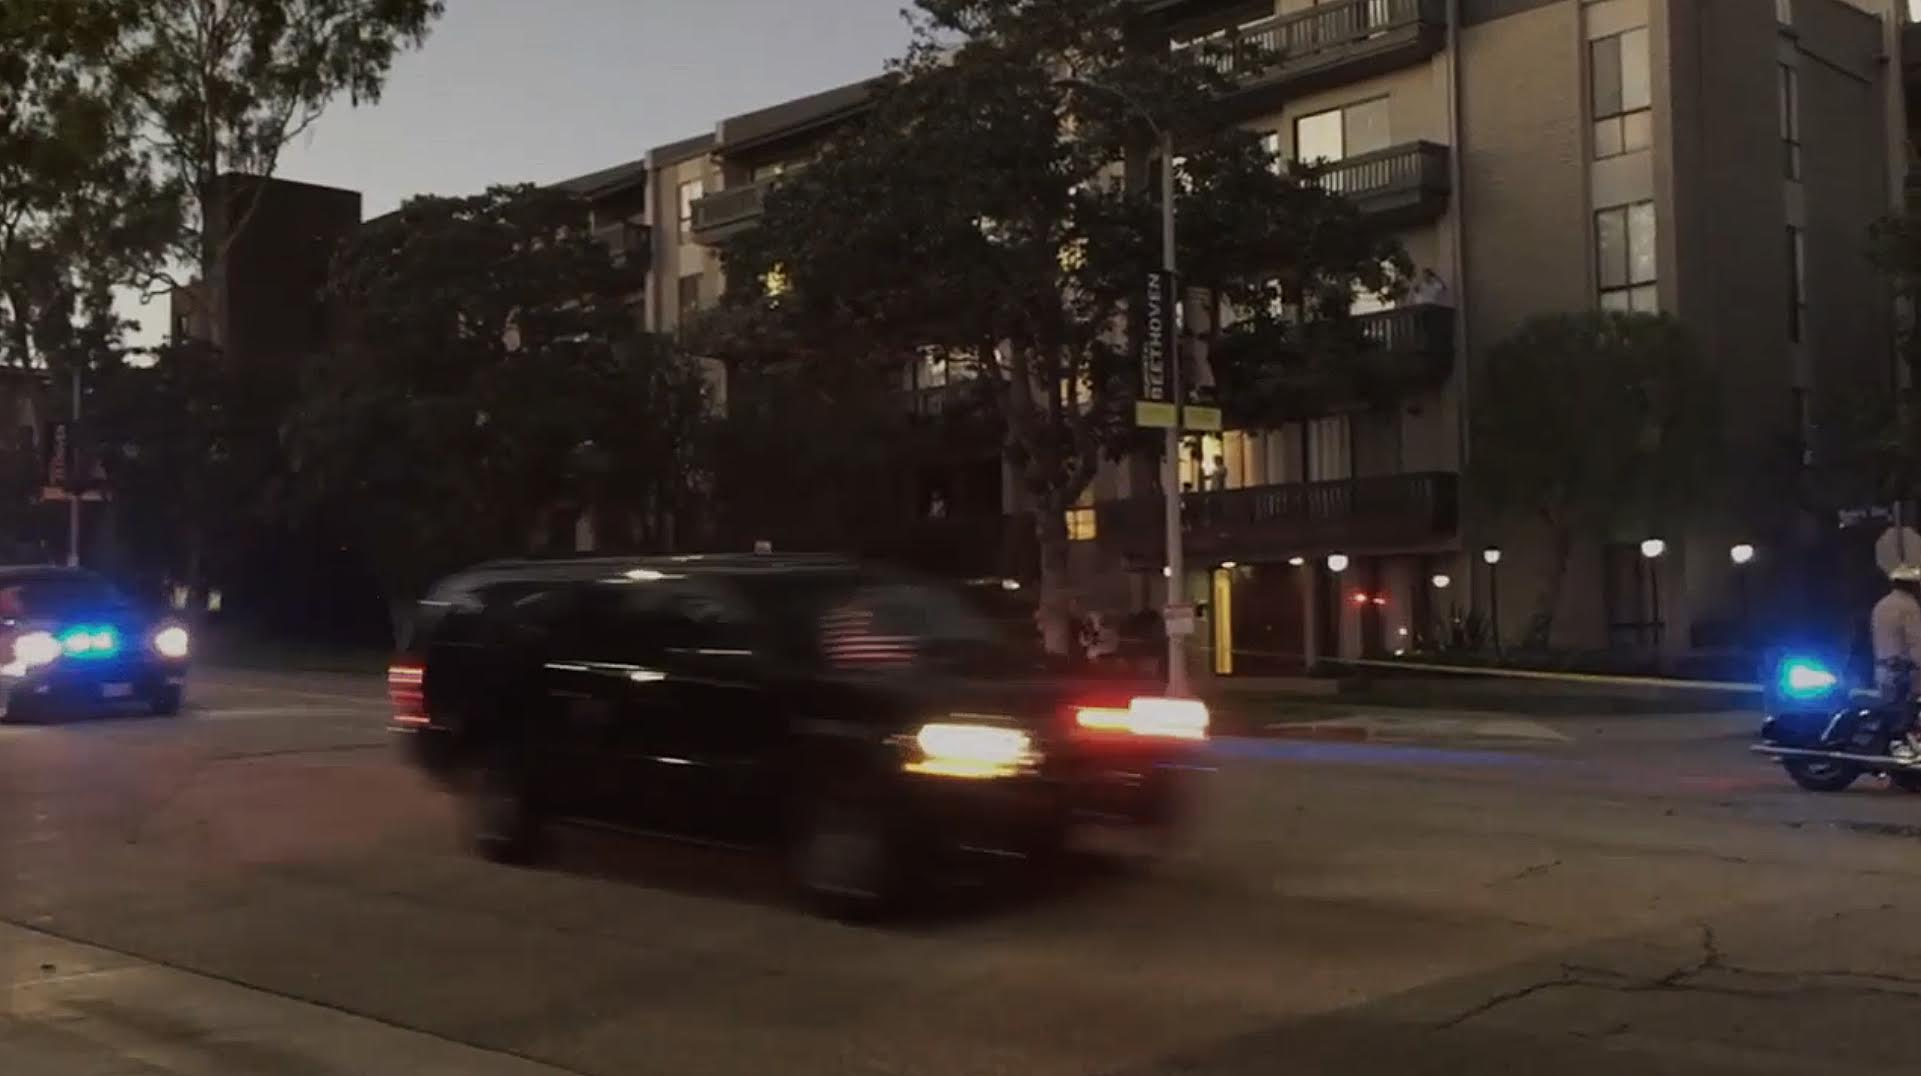 Alia Malley  Motorcade , 2016 HD video on monitor in artist's frame, 2:08 (looped) 30.25 inches x 18.25 inches